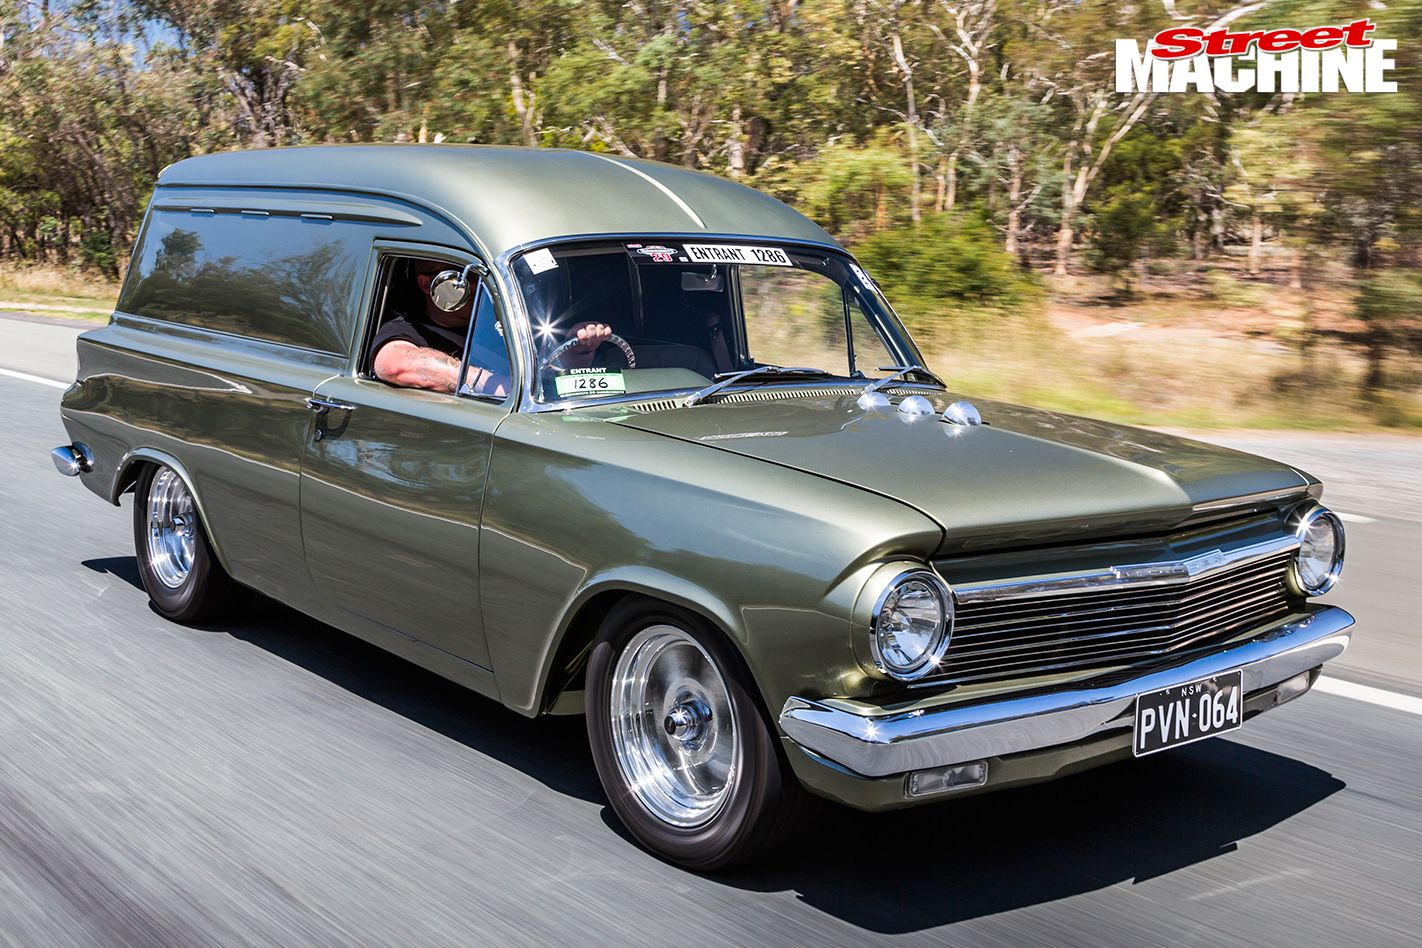 Holden Eh Panel Van Packing An L34 Spec V8 Aussie Muscle Cars